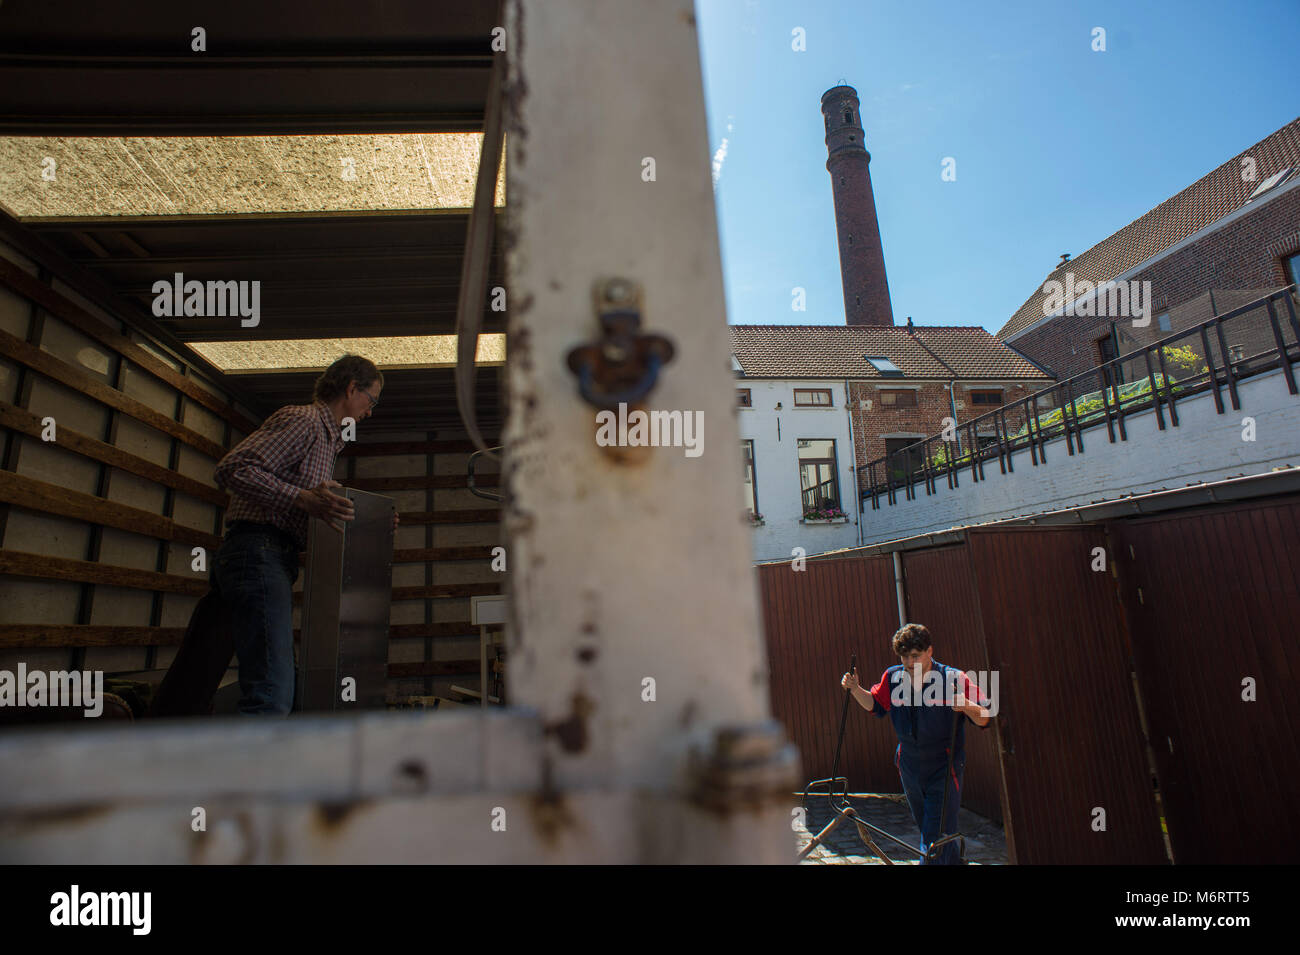 Bruxelles, Community of Poudriere abolishes private property and individualism. Belgium. - Stock Image